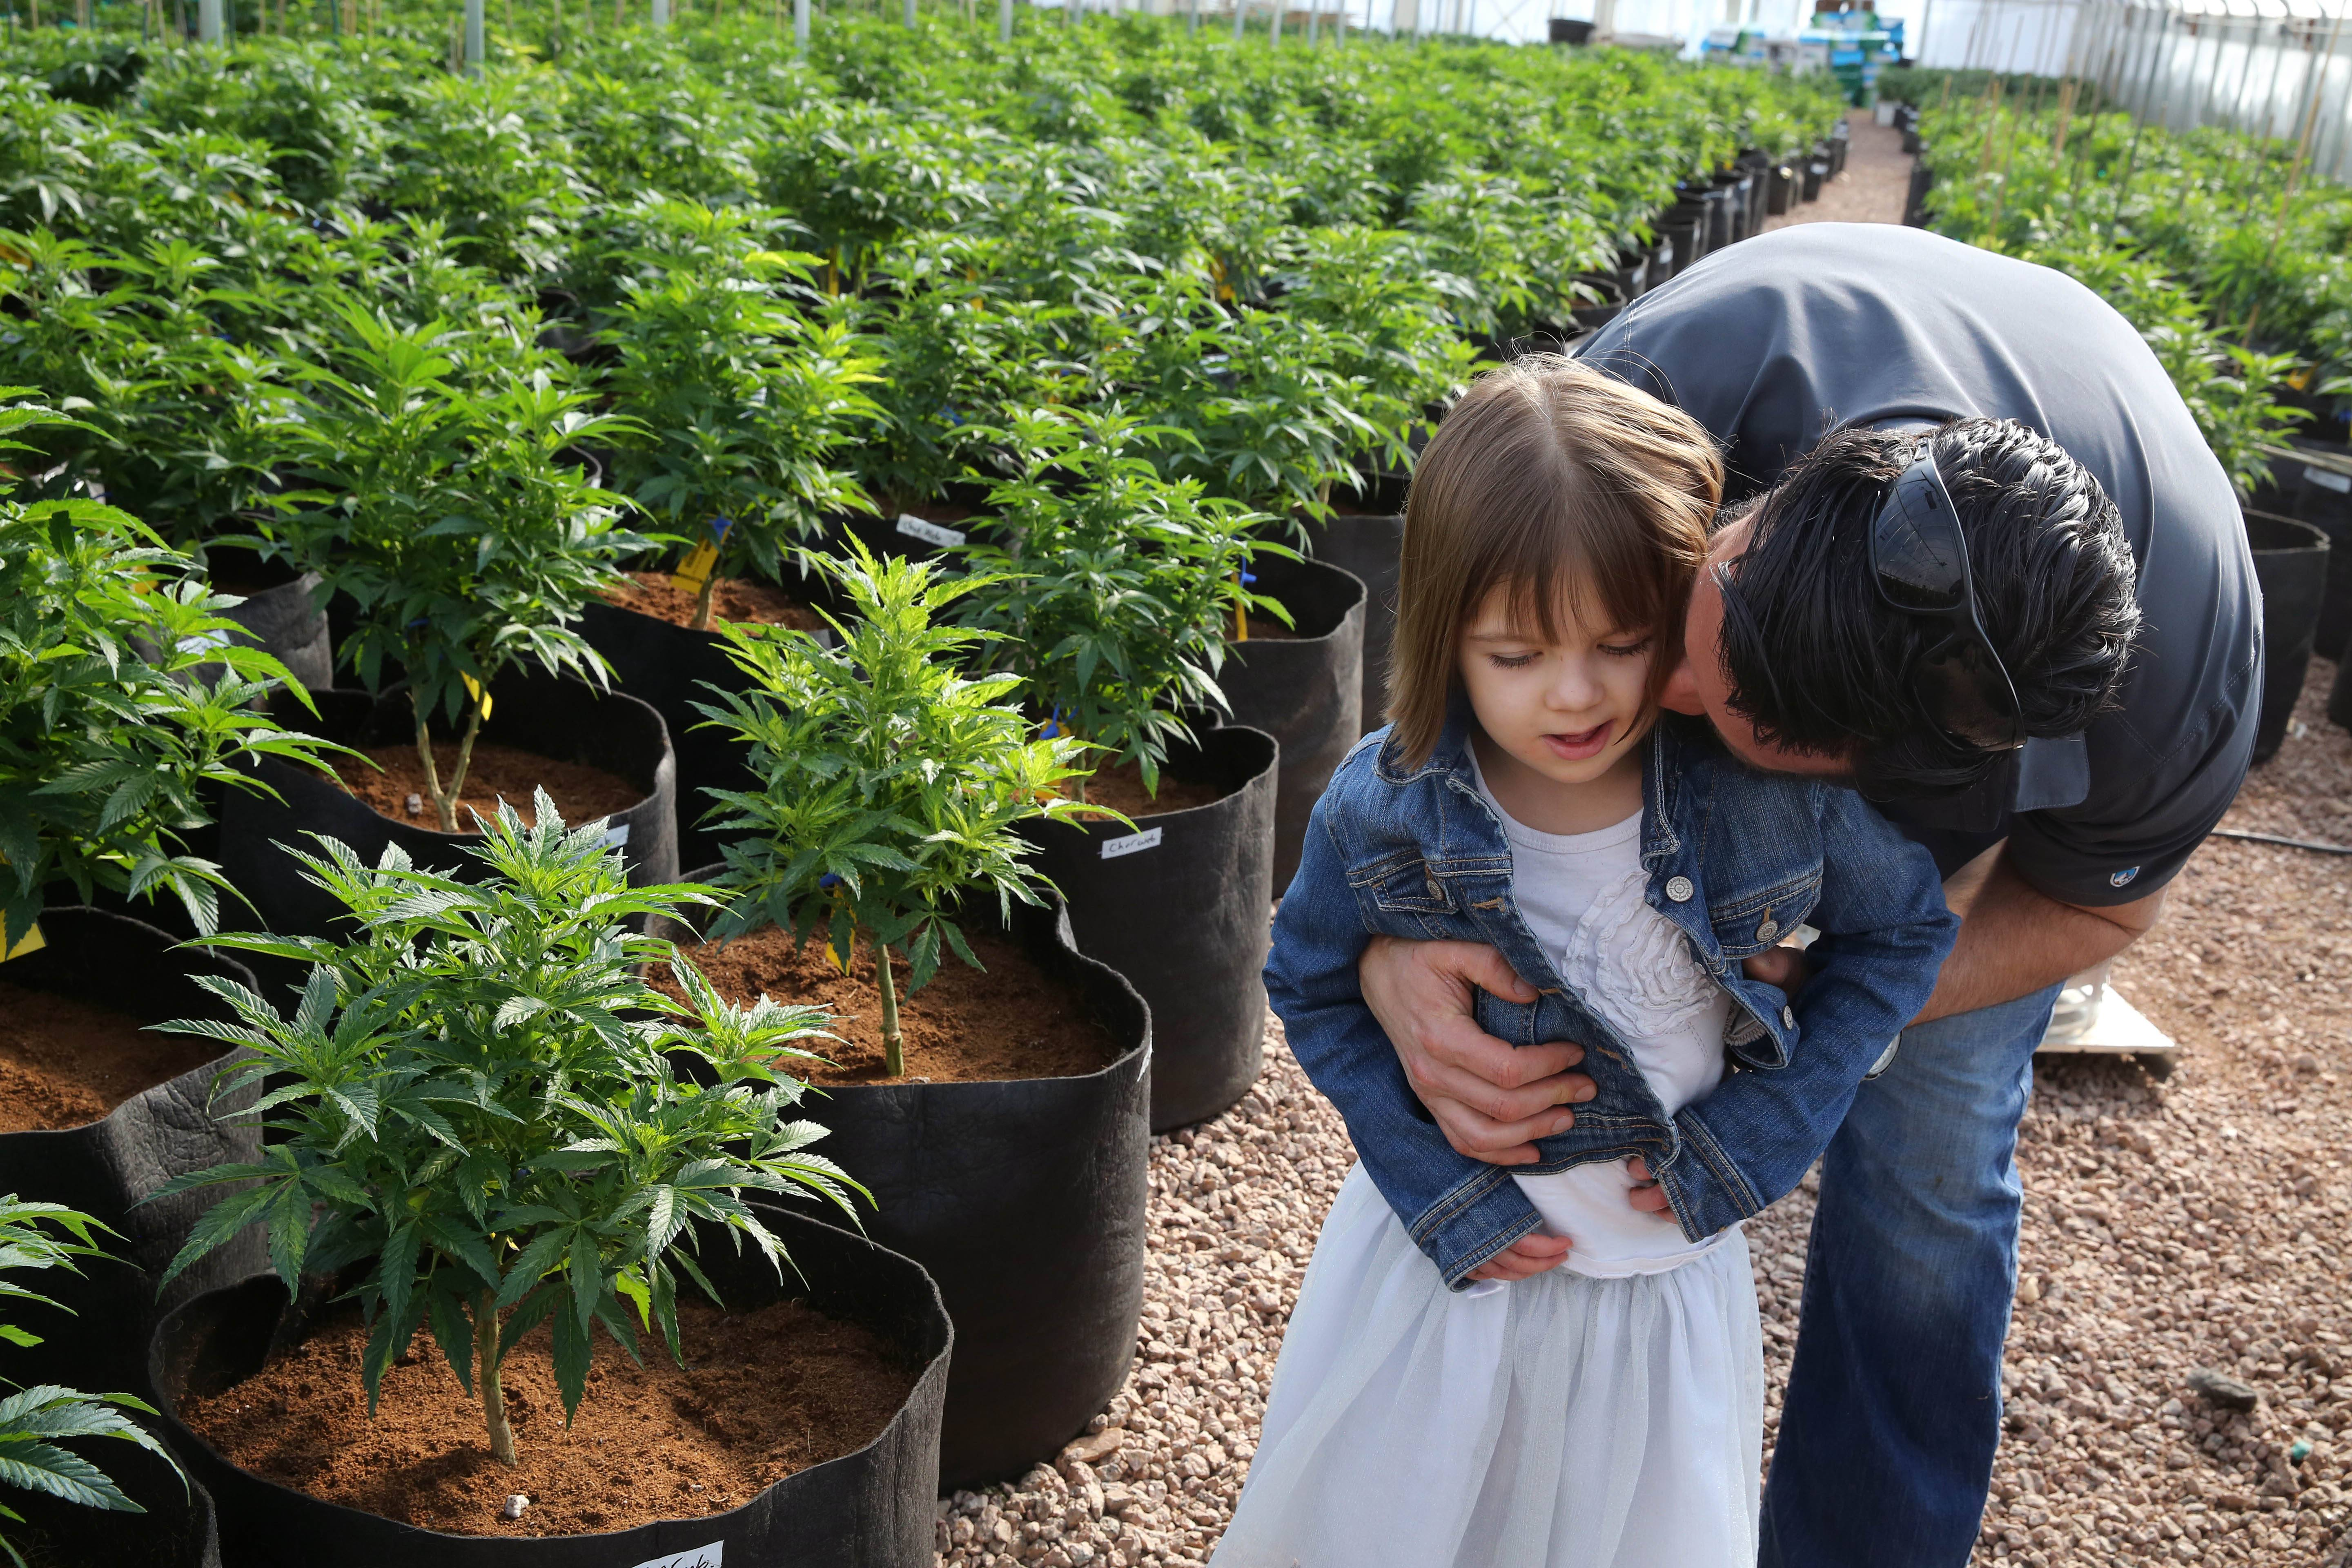 Matt Figi hugs and tickles his once severely-ill 7-year-old daughter Charlotte, as they wander around inside a greenhouse for a special strain of medical marijuana known as Charlotte's Web, which was named after the girl early in her treatment, in a remote spot in the mountains west of Colorado Springs, Colo.